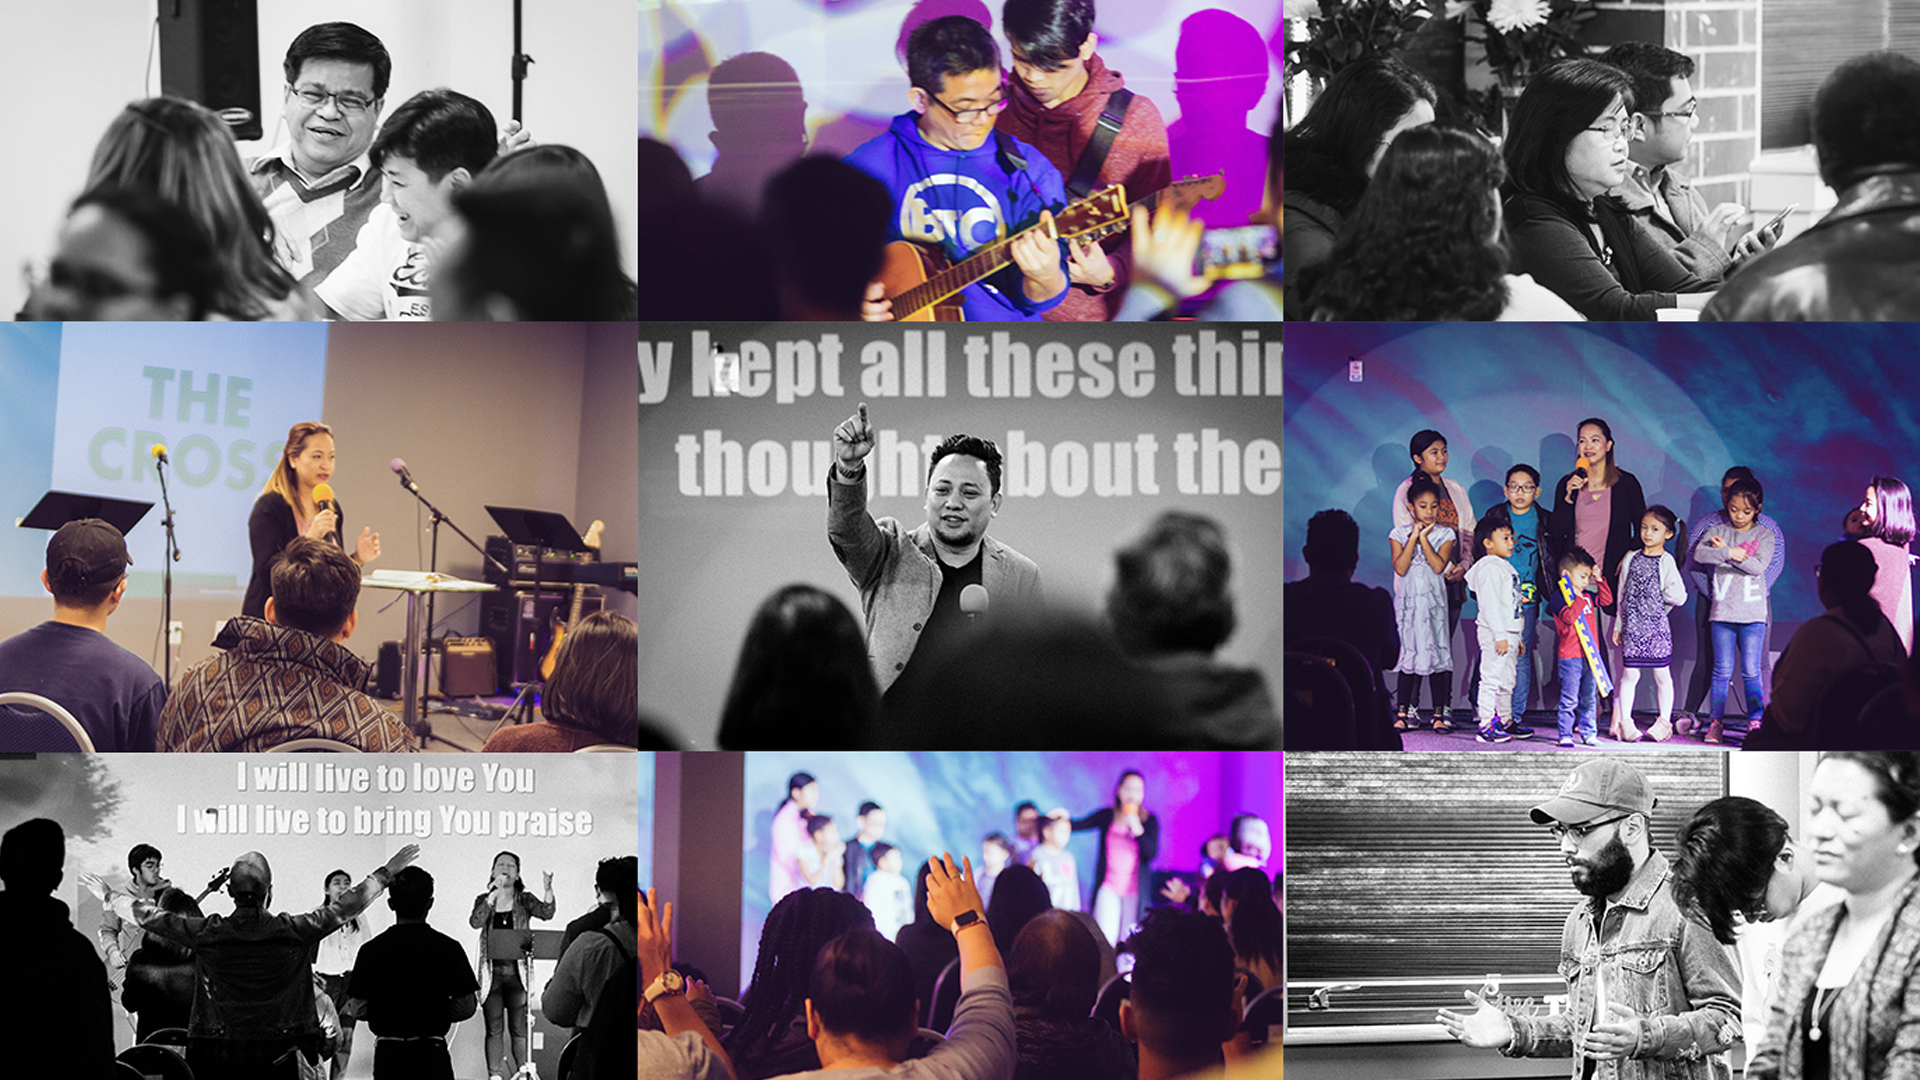 Bless The City NYC - A growing Filipino-led Christian Church in Queens, New York City.